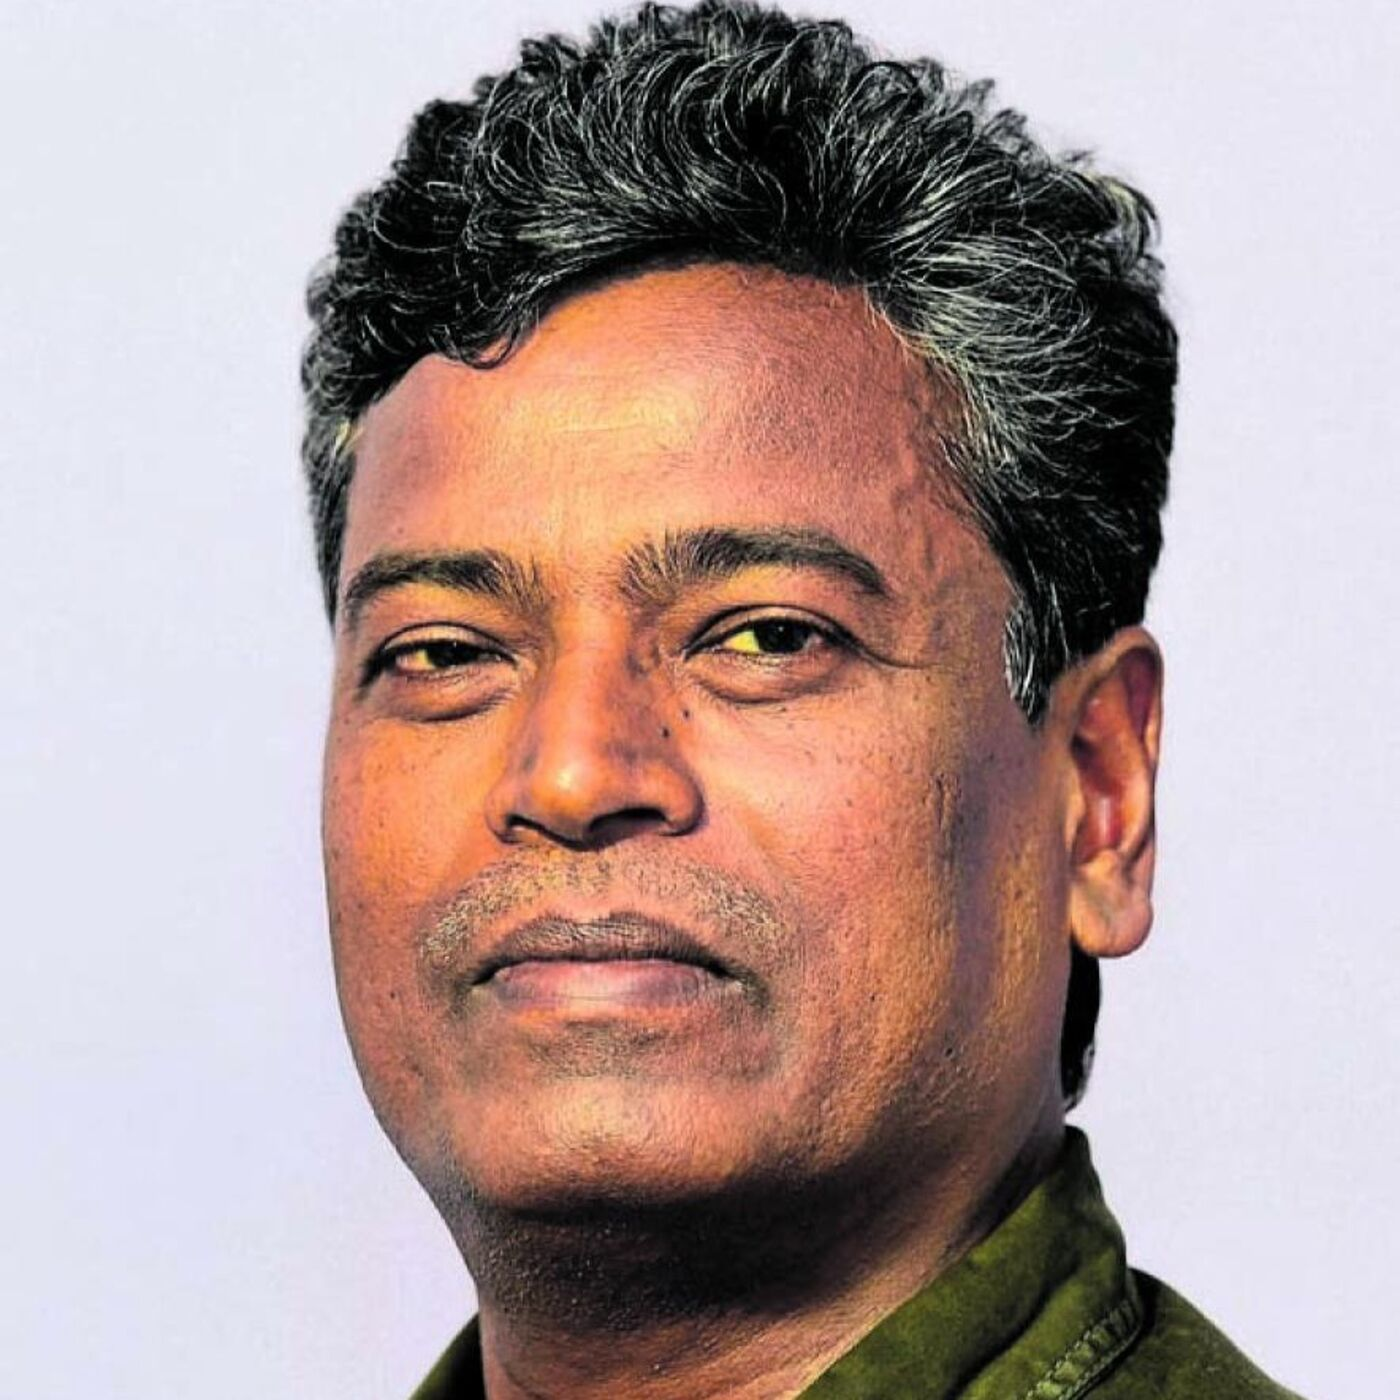 J-POD: Kannada journalist D. Umapathy on the life and letters of the tabloid legend Ravi Belagere